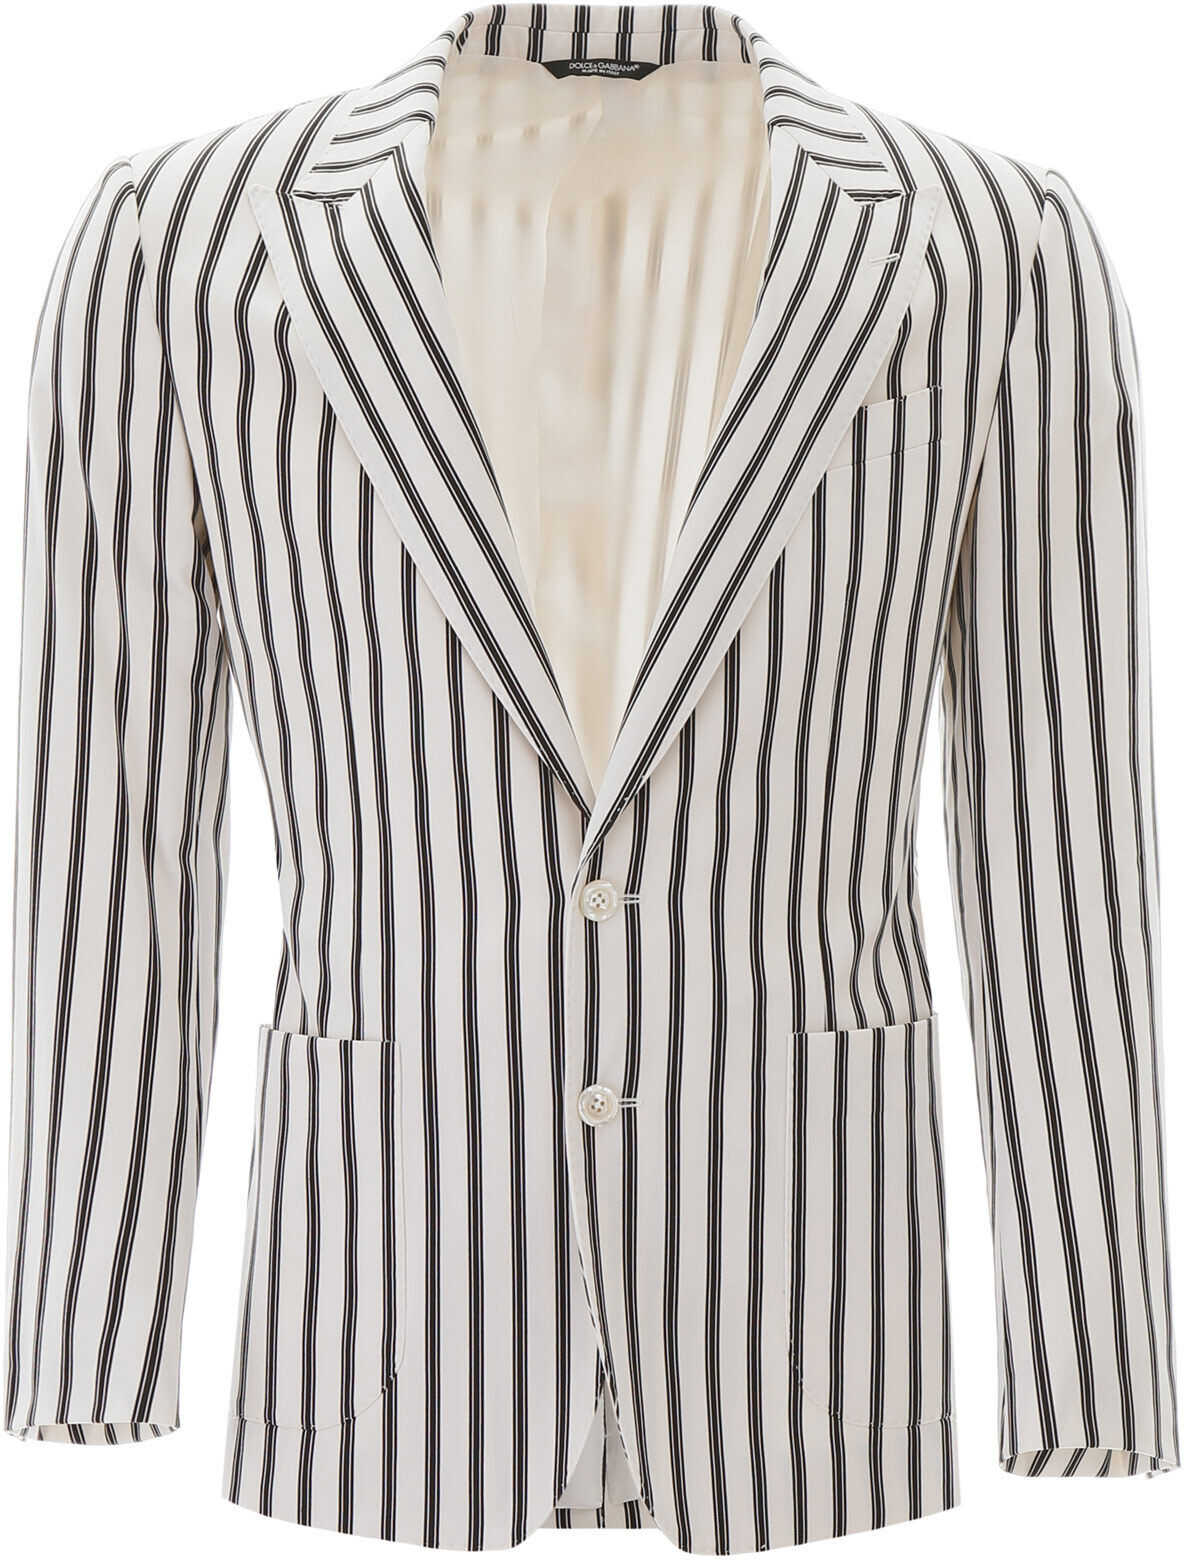 Dolce & Gabbana Striped Tailored Jacket RIGATO imagine